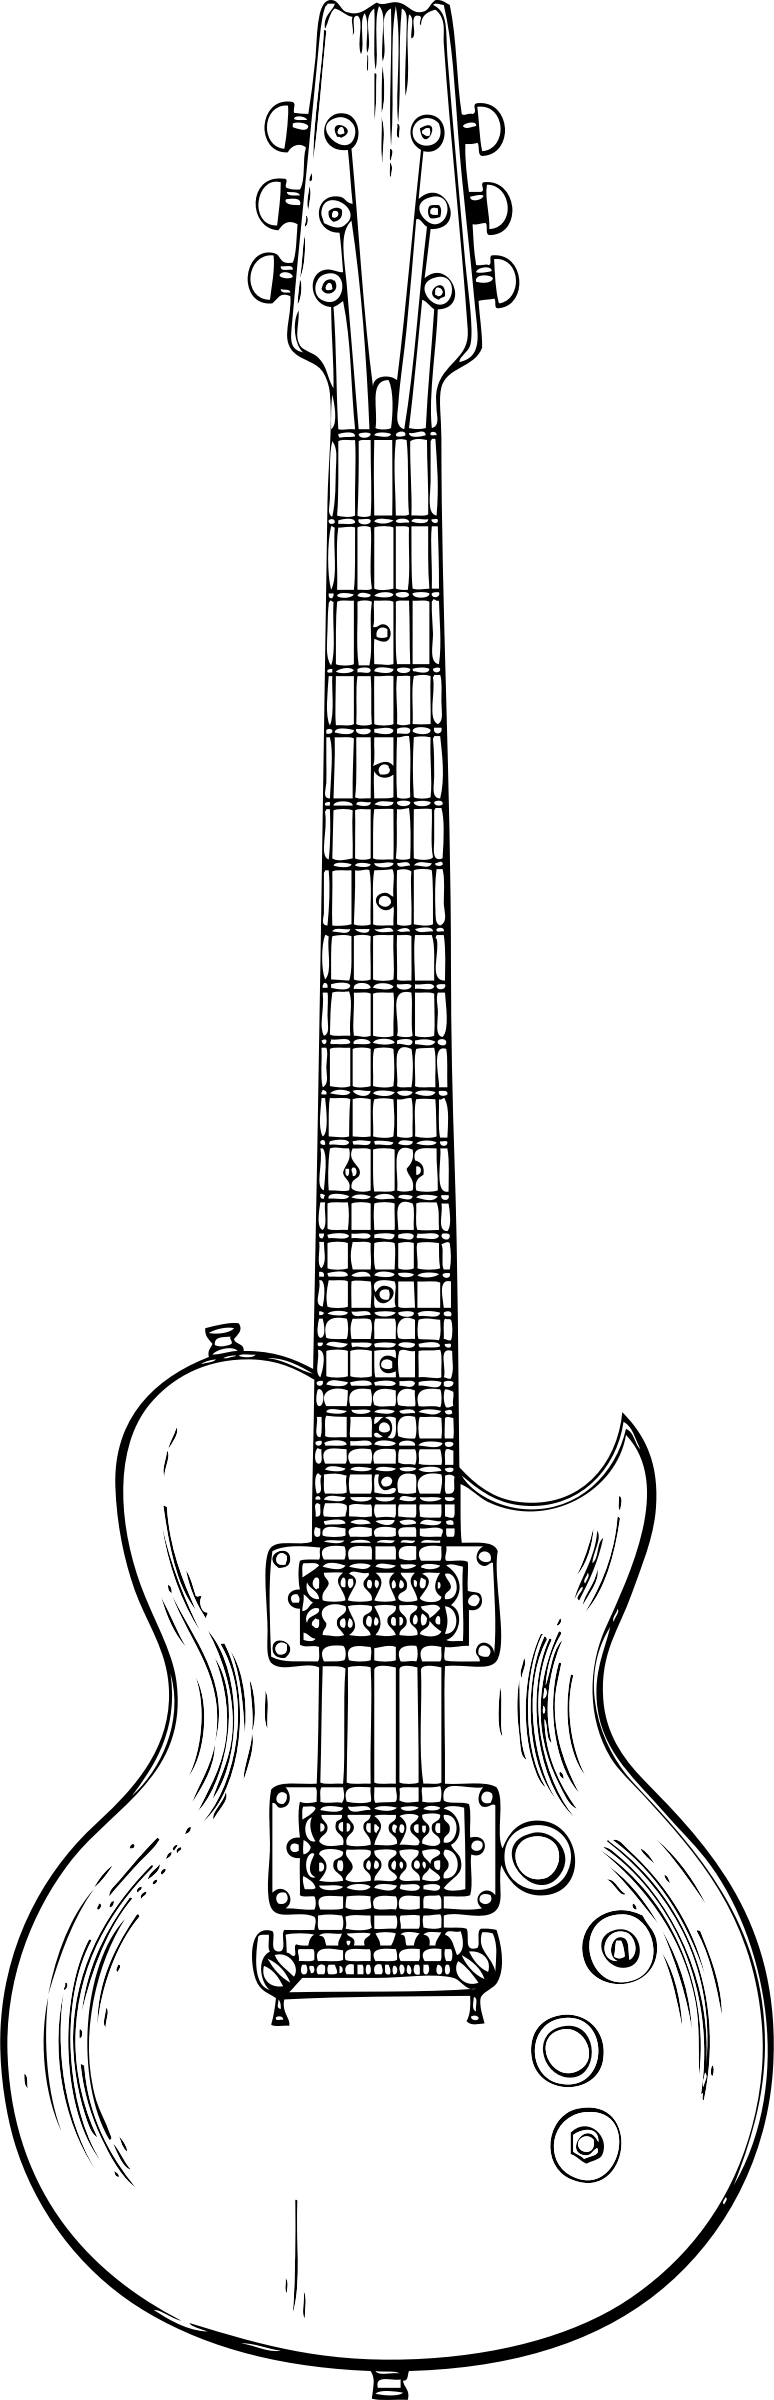 drawing guitar outline drawing of an guitar digital art by bigalbaloo stock drawing guitar